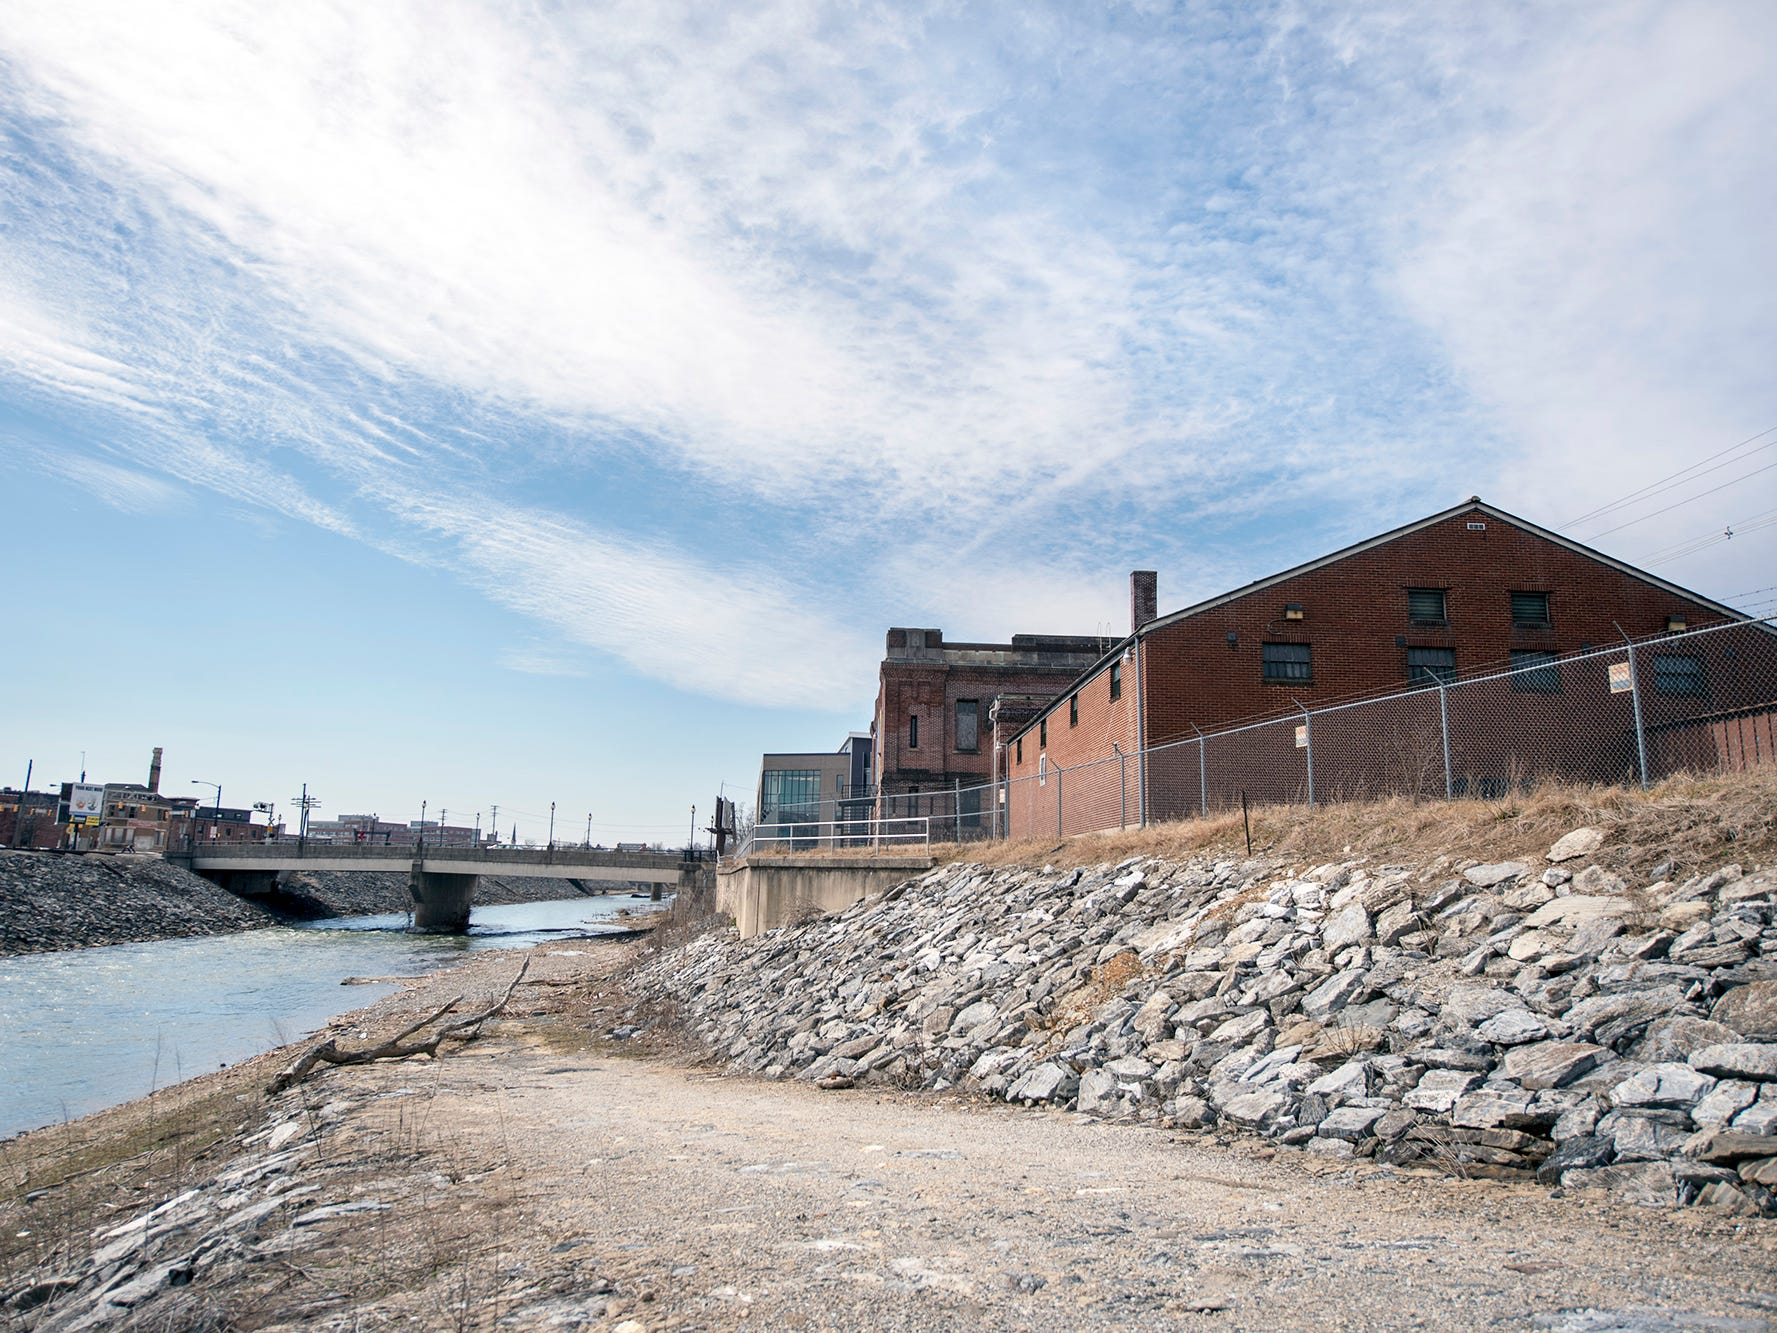 There is an access to the Codorus Creek behind the building. The York Armory, a brick fortress built in 1913 once used by the Pa. National Guard, will soon be transformed into Keystone Kidspace, an educational experience for families. It's expected to open in 2020.